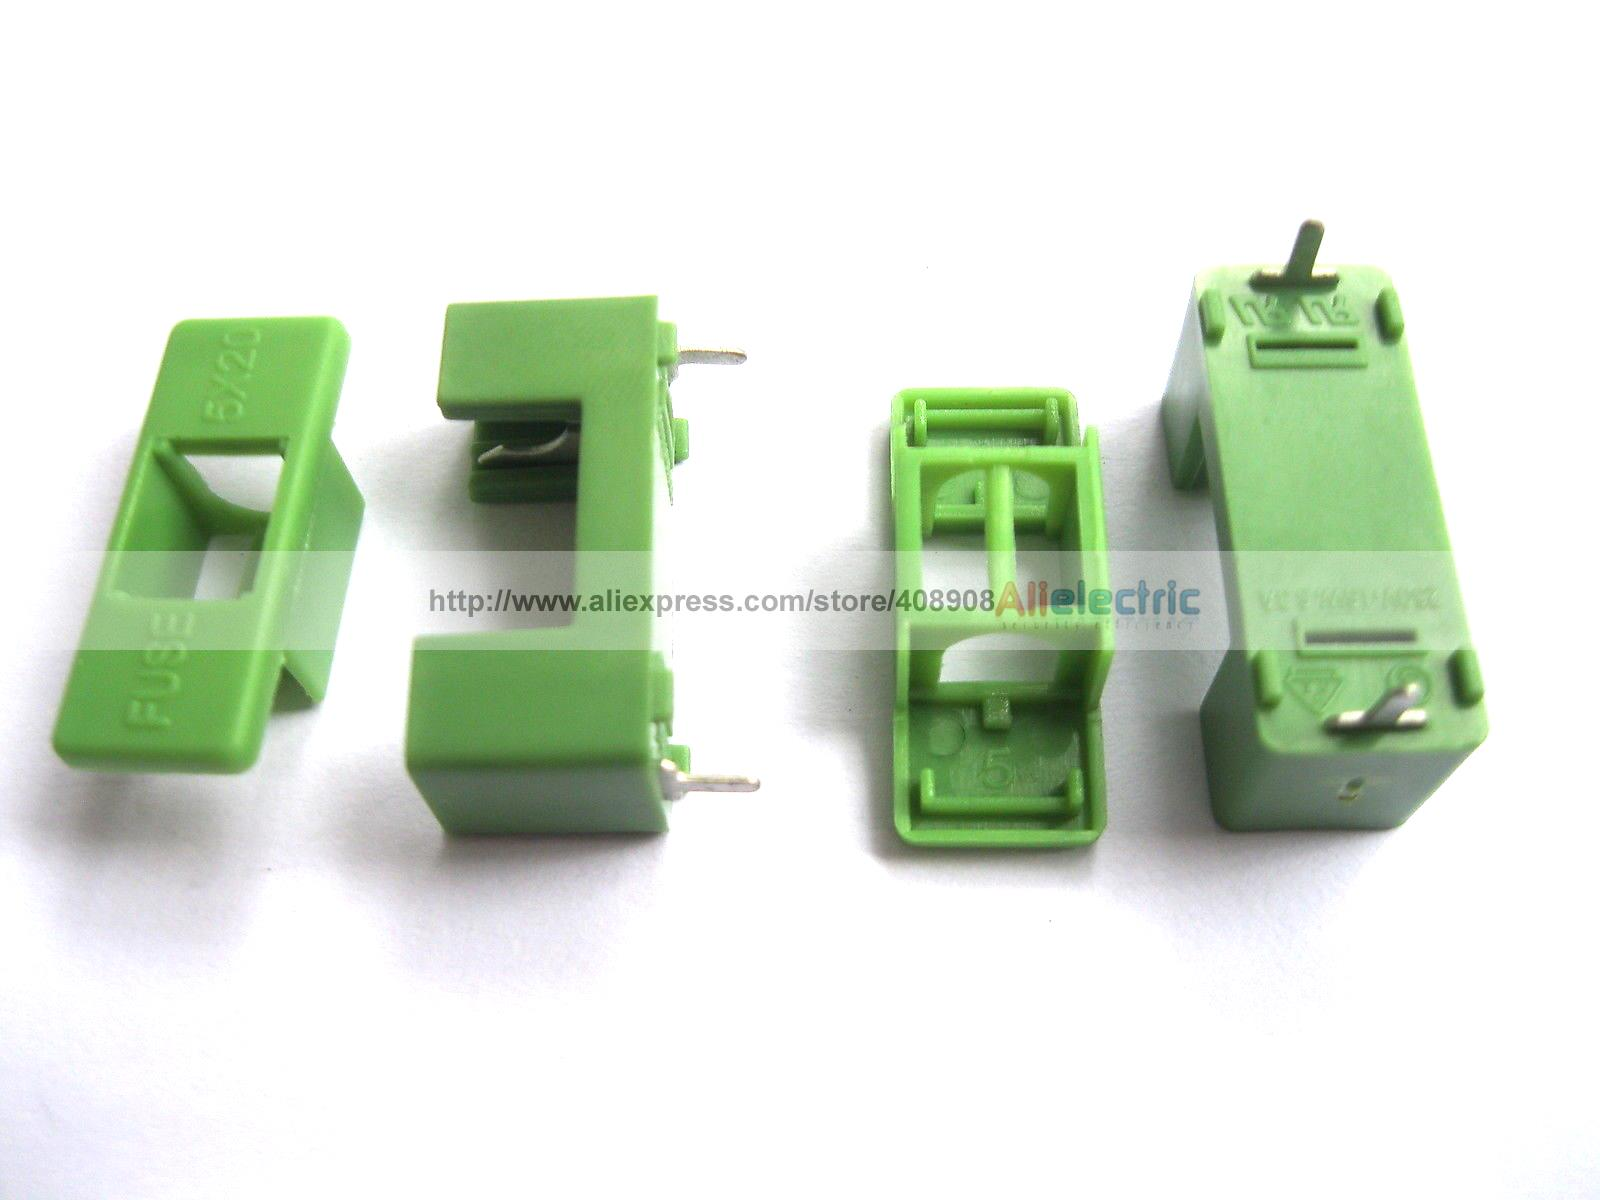 100 Pcs PTF 7 DIP Fuse Holder 6 3A 250V Used for 5x20 Green Color каталог punta